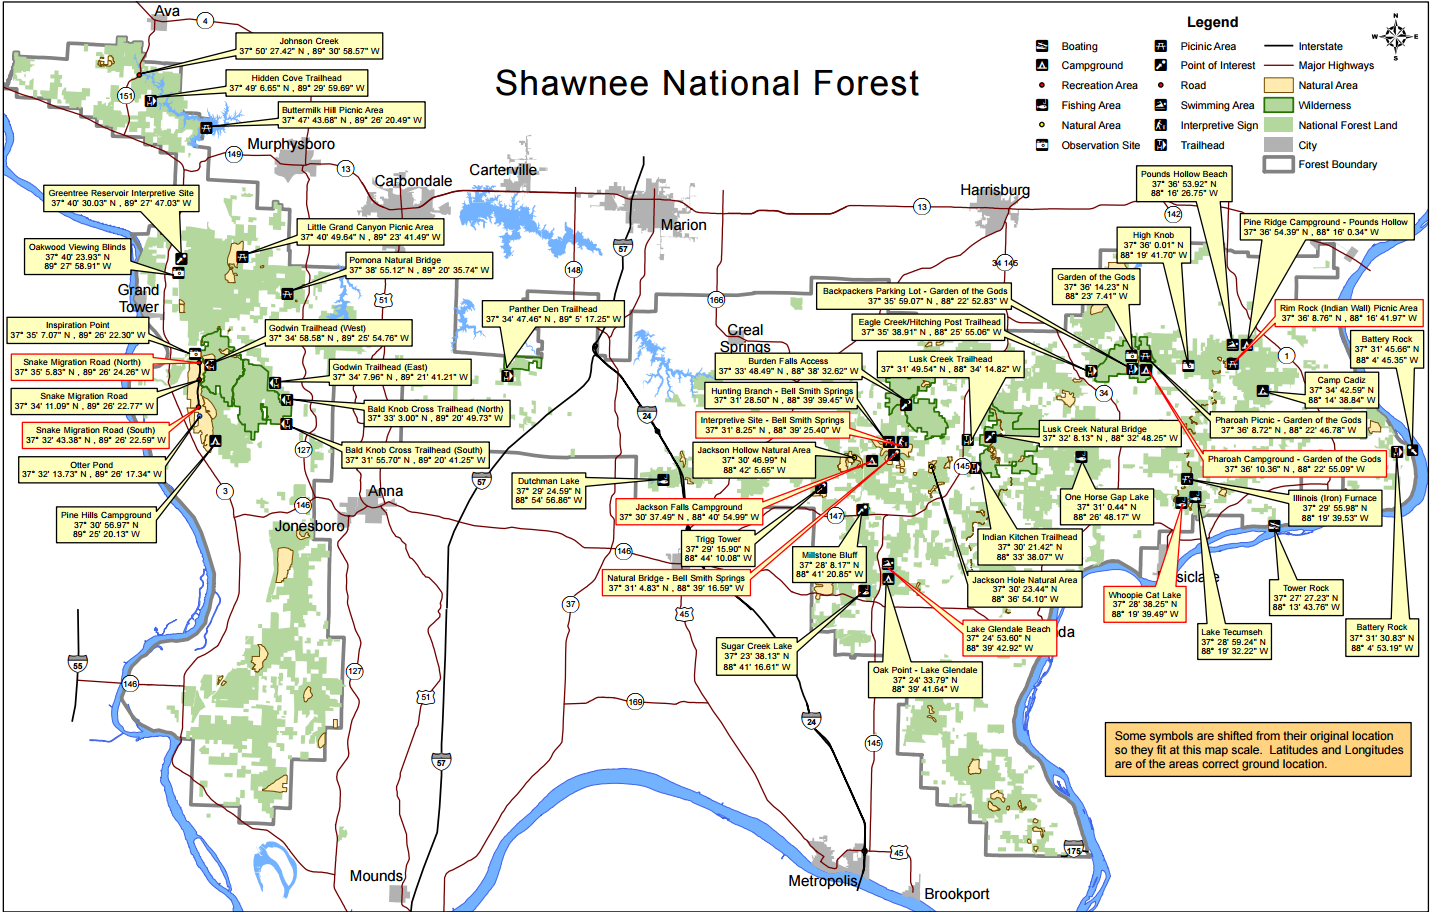 Shawnee National Forest, Map | Day trips in 2019 | Shawnee national on illinois state map with cities and towns, illinois beach state park, louisville parks map, chain o'lakes state park il map, illinois state parking map, illinois state school districts map, illinois capitol complex map, illinois state police investigation, illinois congressional delegation map, champaign illinois state map, illinois state park rangers, kankakee river state park trail map, illinois state prisons map, illinois real estate map, illinois university campus map, illinois rest areas map, north dakota parks map, illinois map schaumburg il, walnut point state park map, buffalo rock state park map,